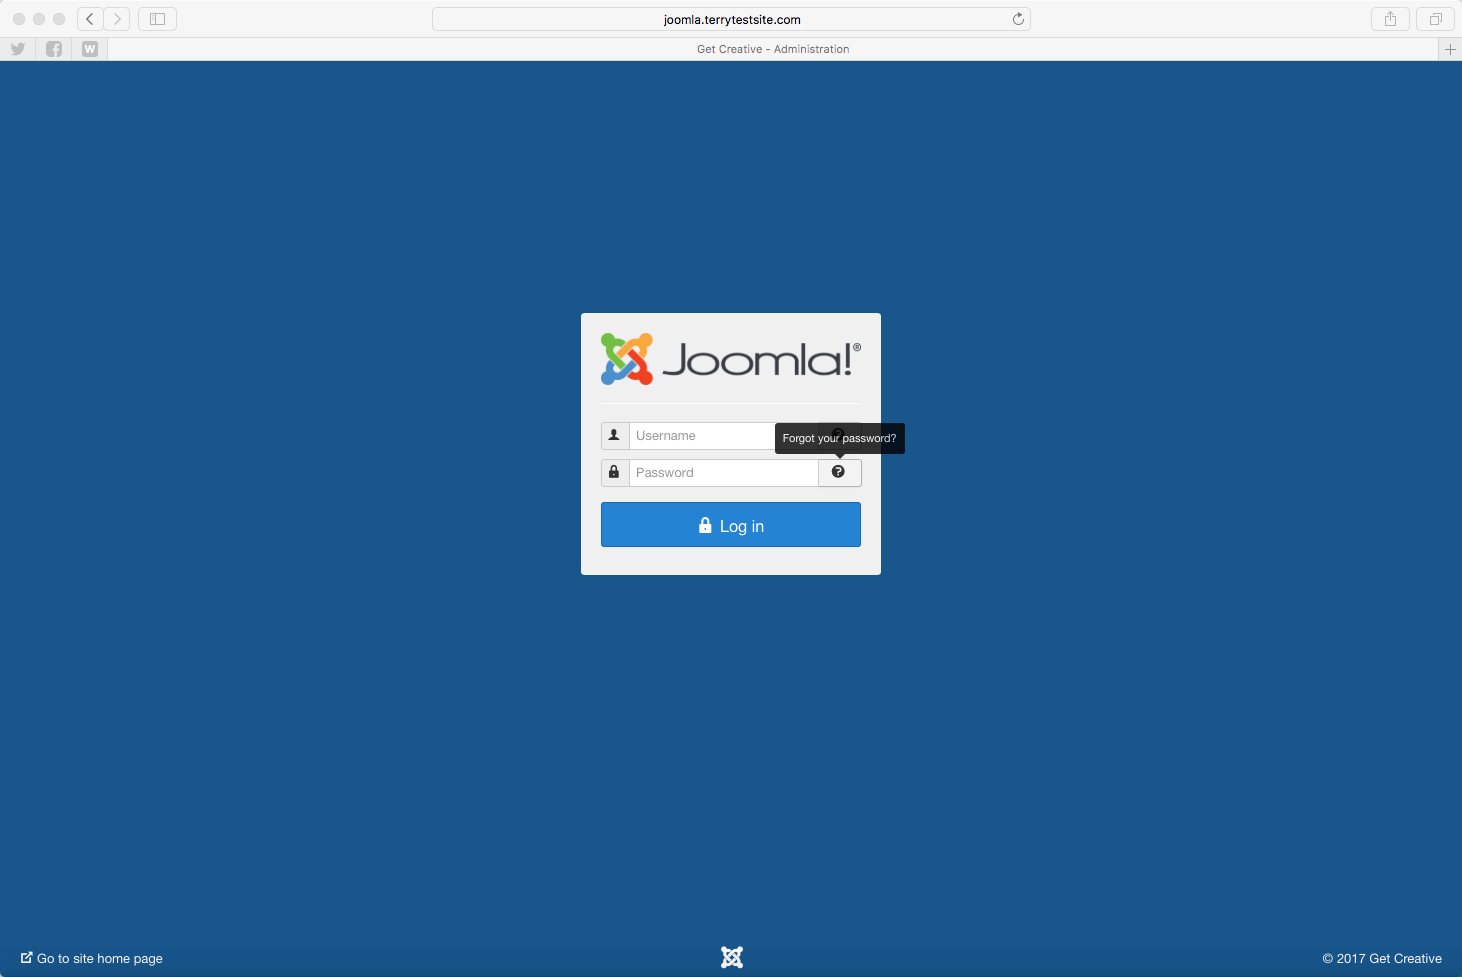 How to reset your Joomla! password - HostPapa Knowledge Base